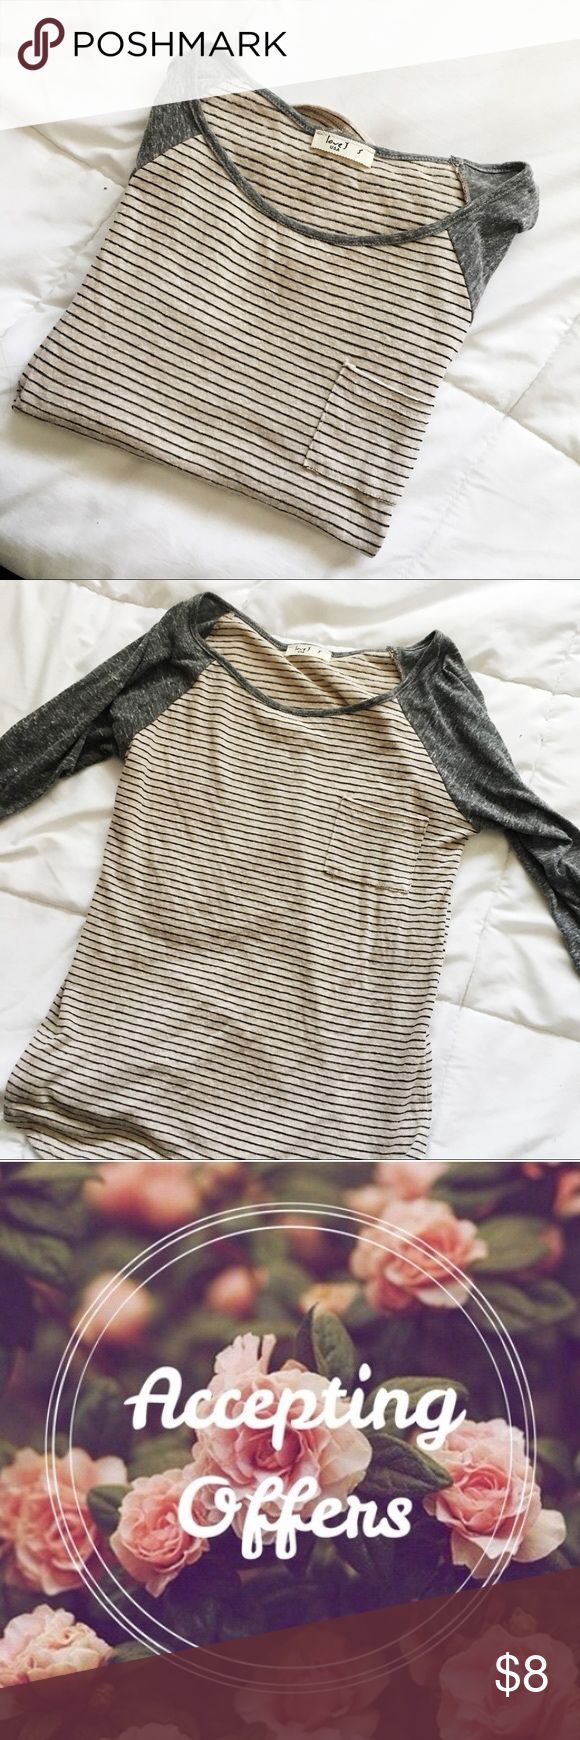 Striped Tee 🌻 Bundle with some of my other items to save on price :)  CHEAPER ON DEPOP APP  Brand new and never worn. This is a total staple in your closet! Very flattering. Fits XS-S. UO for views Urban Outfitters Tops Tees - Long Sleeve